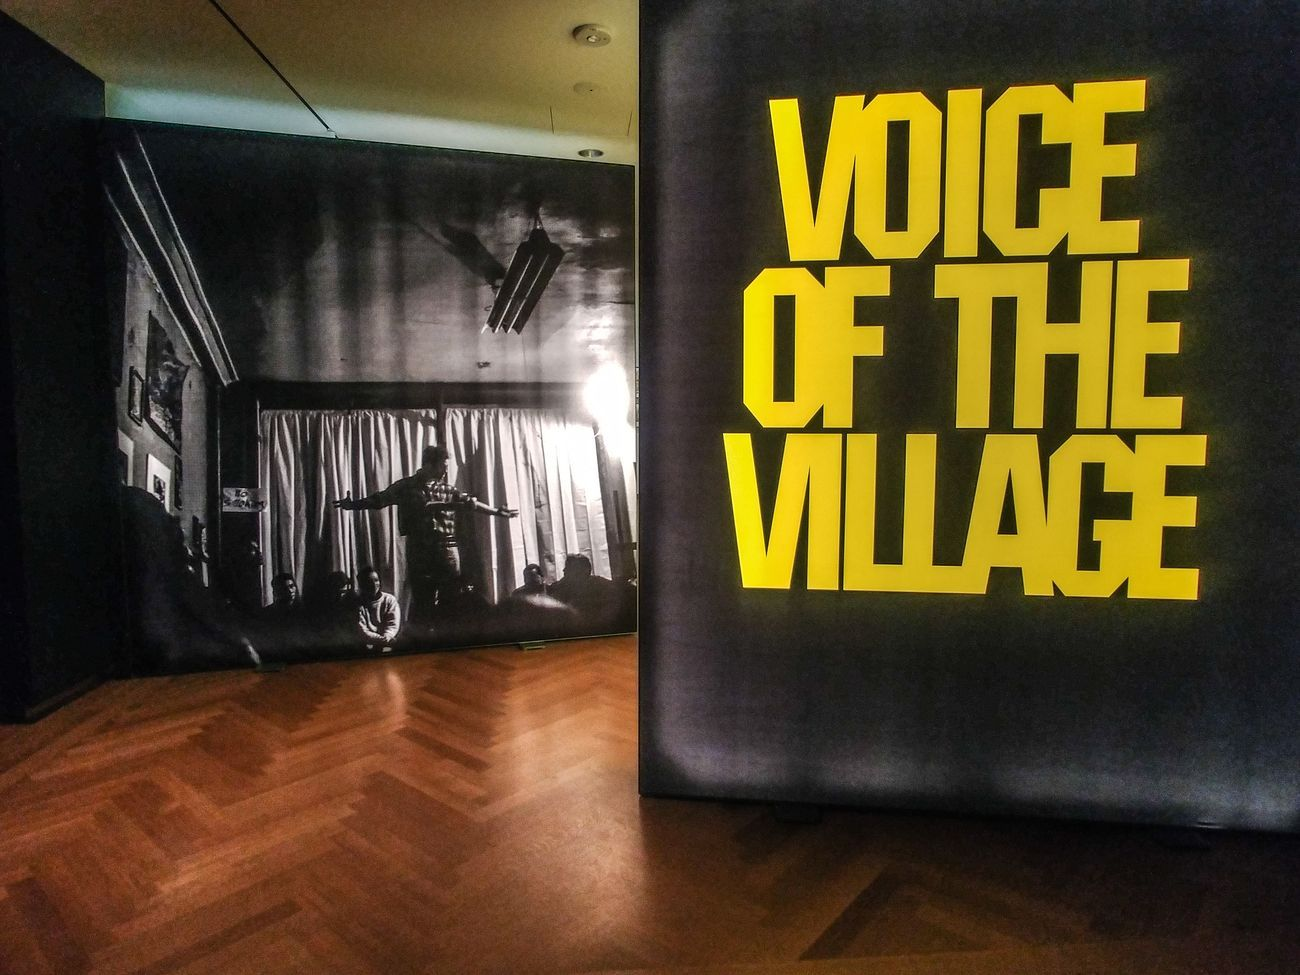 L'ingresso alla mostra Voice of the Village al Museum of the City of New York. Photo Maurita Cardone